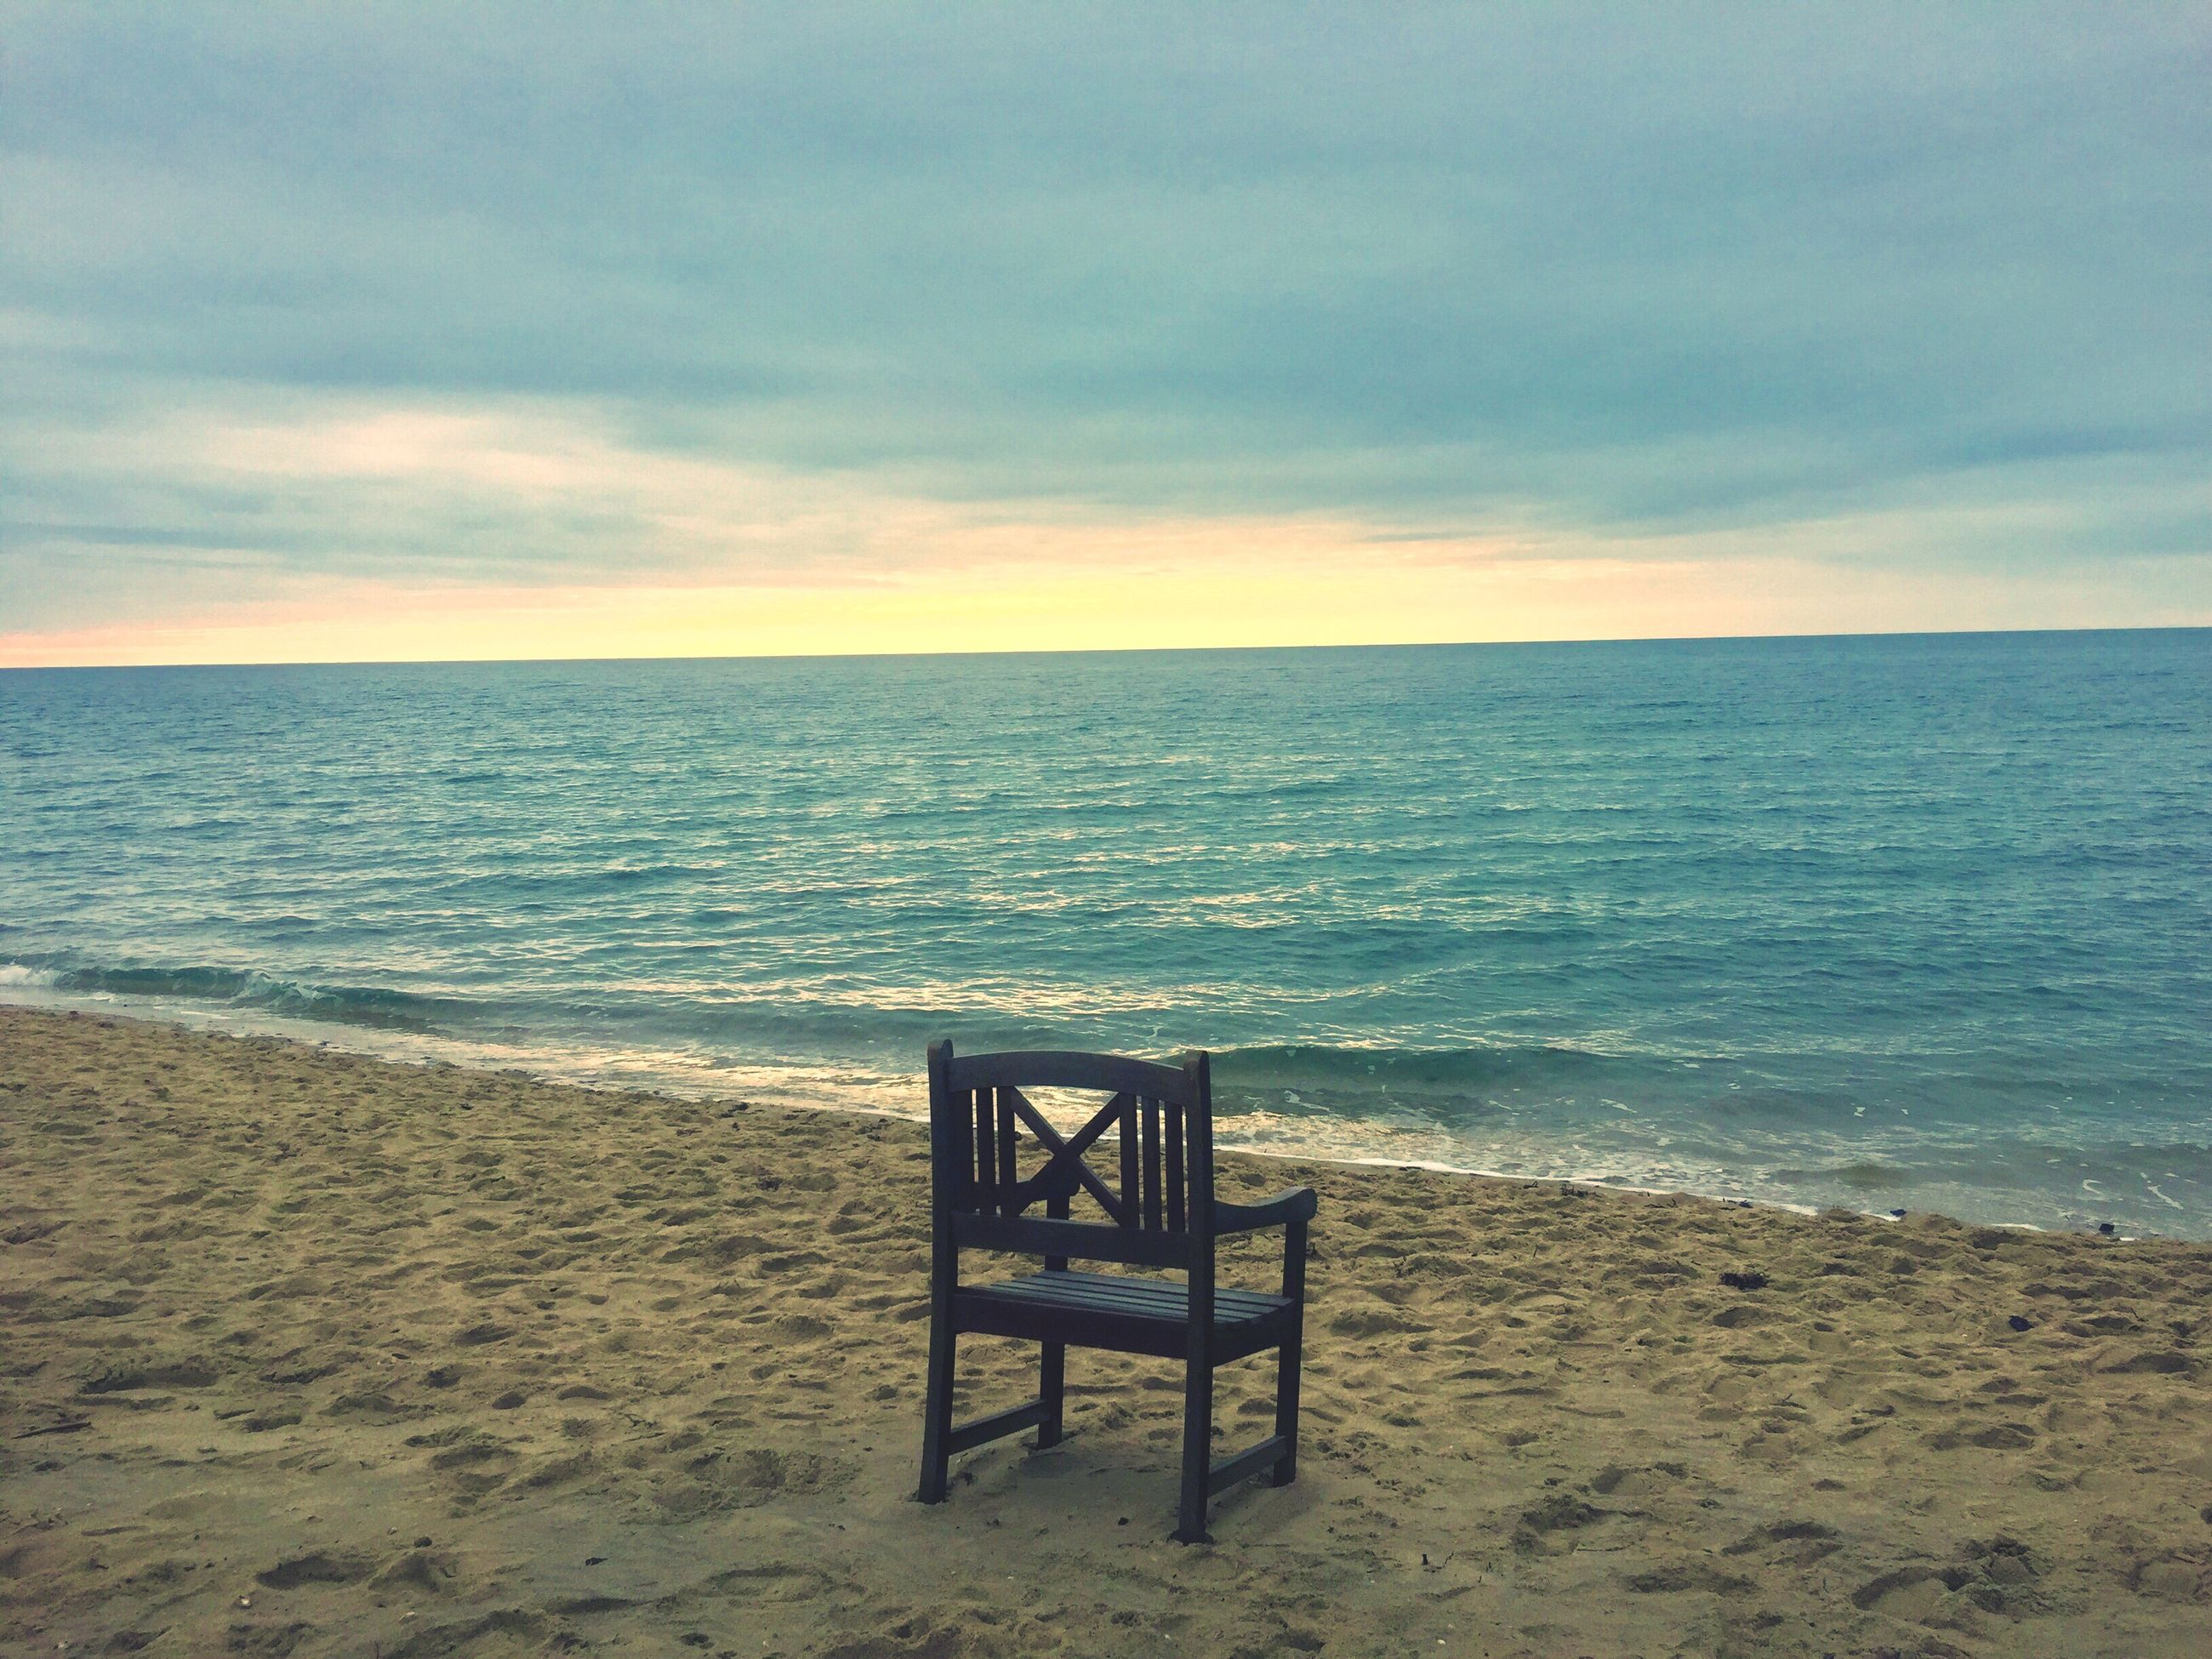 sea, horizon over water, chair, beauty in nature, sky, nature, scenics, tranquility, idyllic, water, cloud - sky, outdoors, sunset, no people, beach, table, day